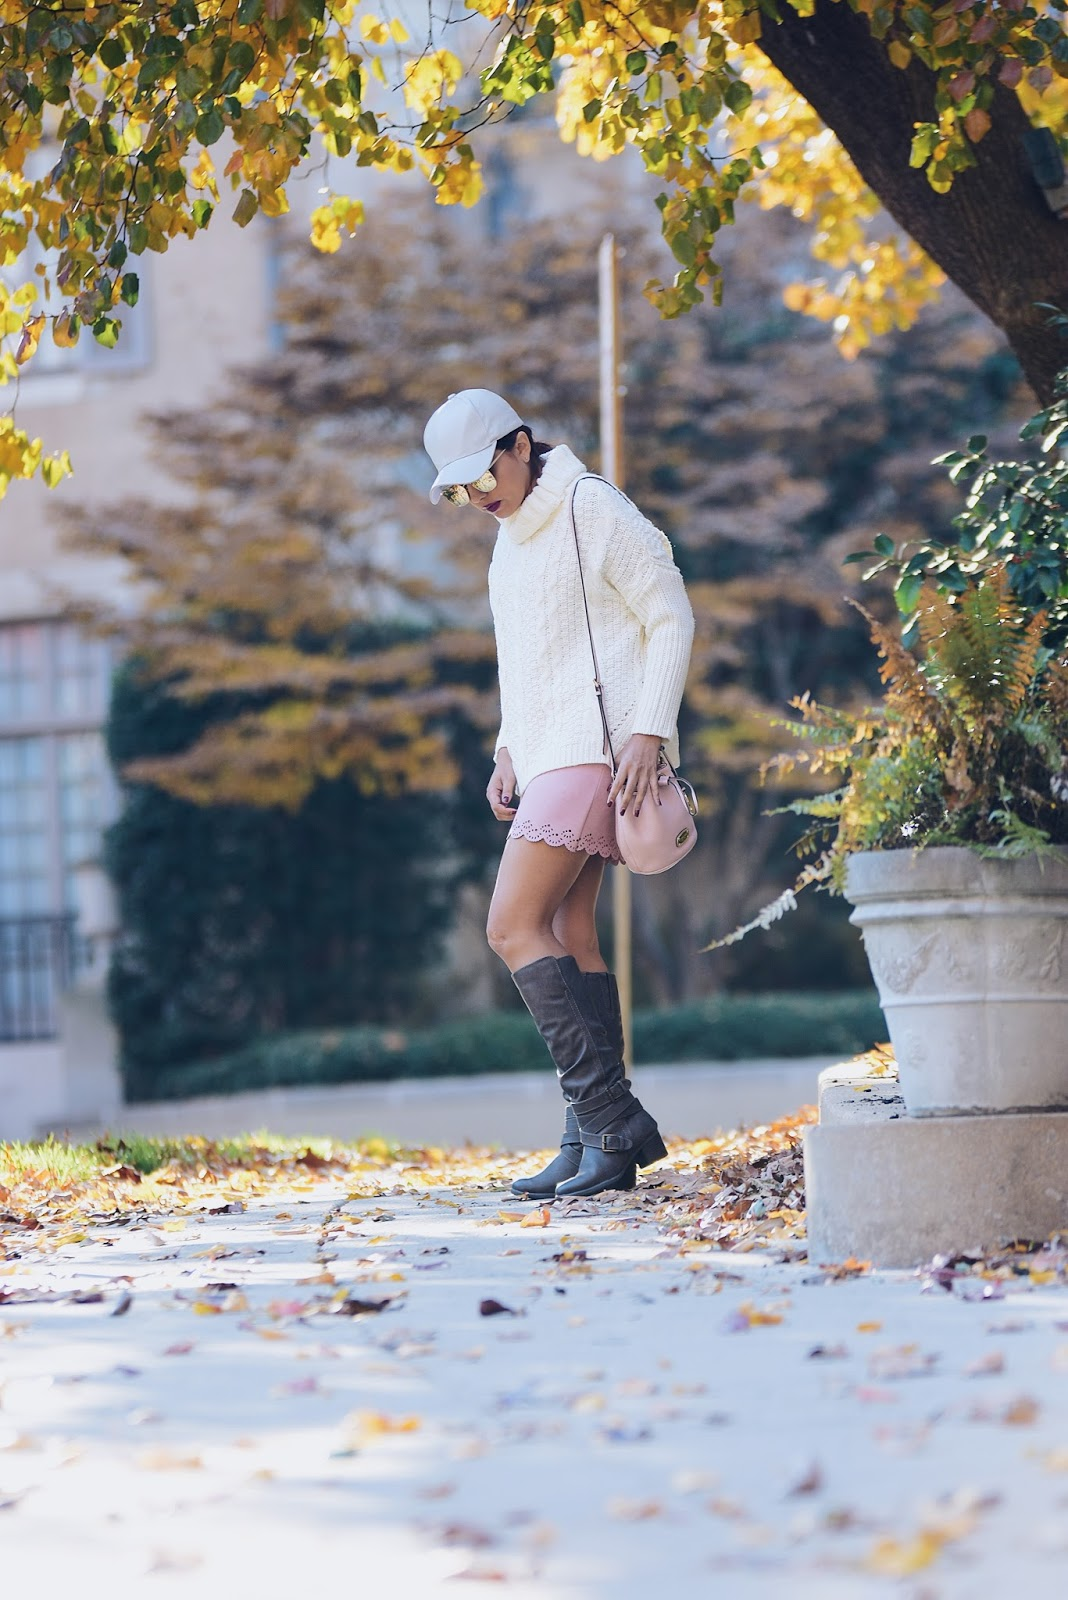 Cable Knit Sweater by Mari Estilo Wearing: Baseball Hat: Gamiss Cable Knit sweater: SheIn Skirt: Choies Bag: Michael Kors Boots: Target Style